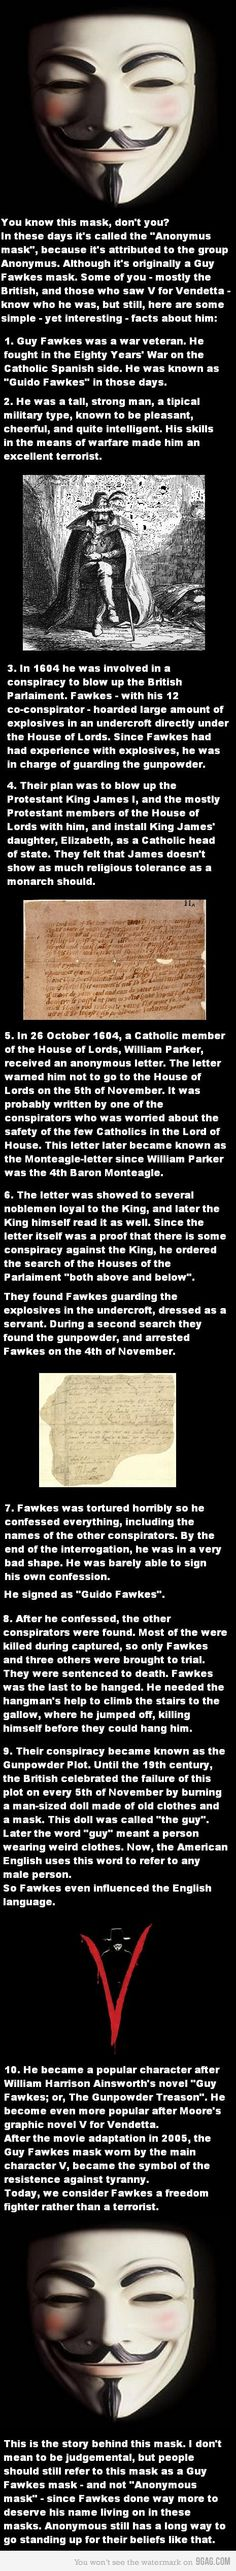 I hope this is true. The story of Guy Fawkes, happy Guy Fawkes Day!!! Remember,  Remember the 5th of November! !